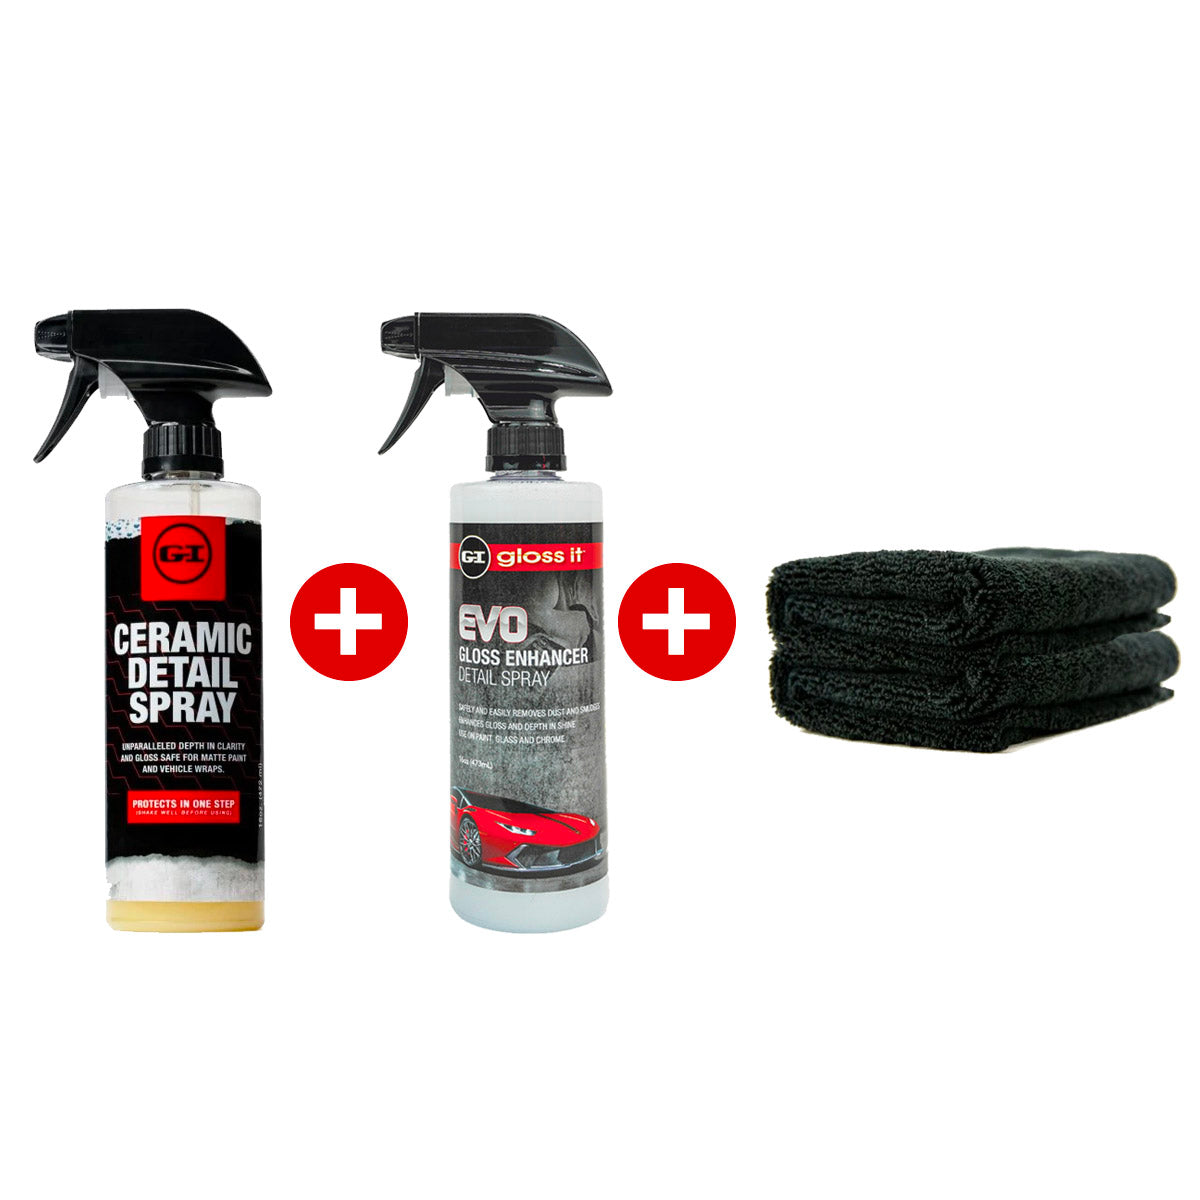 Ceramic Detail Spray + Gloss Enhancer + 2 Microfiber Towels